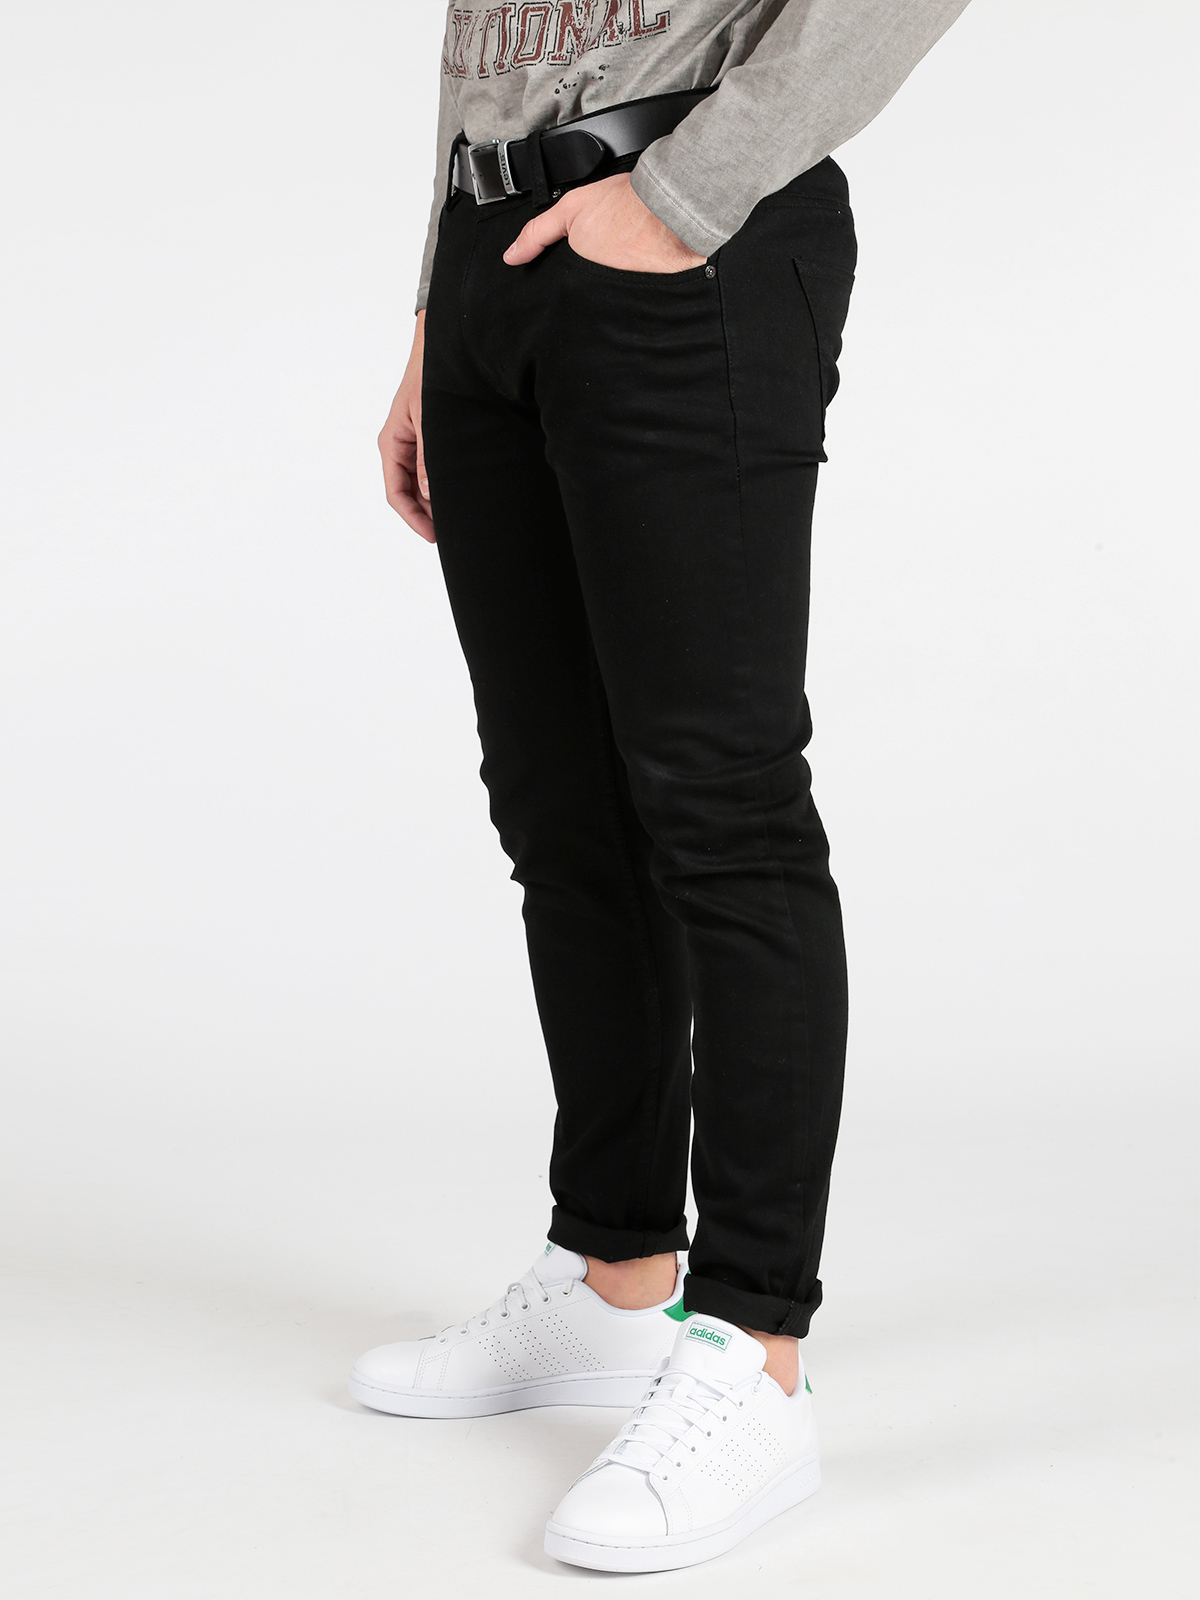 Black Trousers Cotton Blend